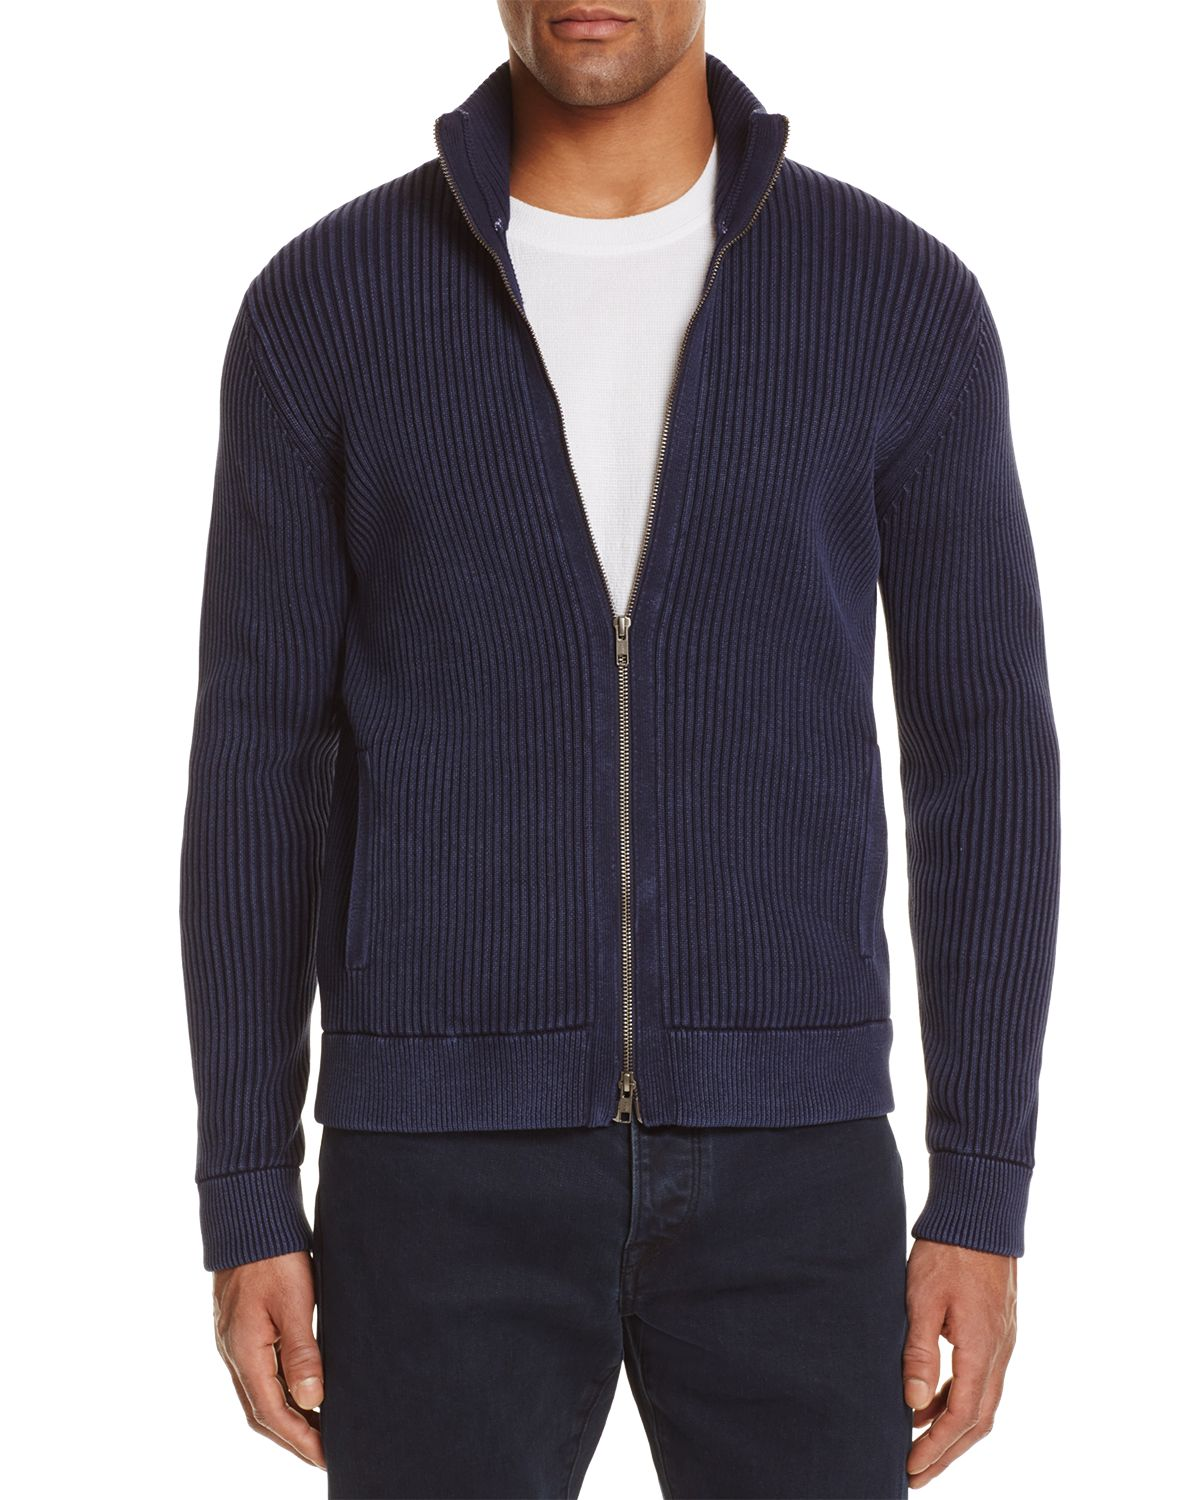 Ribbed Cotton Zip Cardigan Sweater   100 Percents Exclusive by The Men's Store At Bloomingdale's